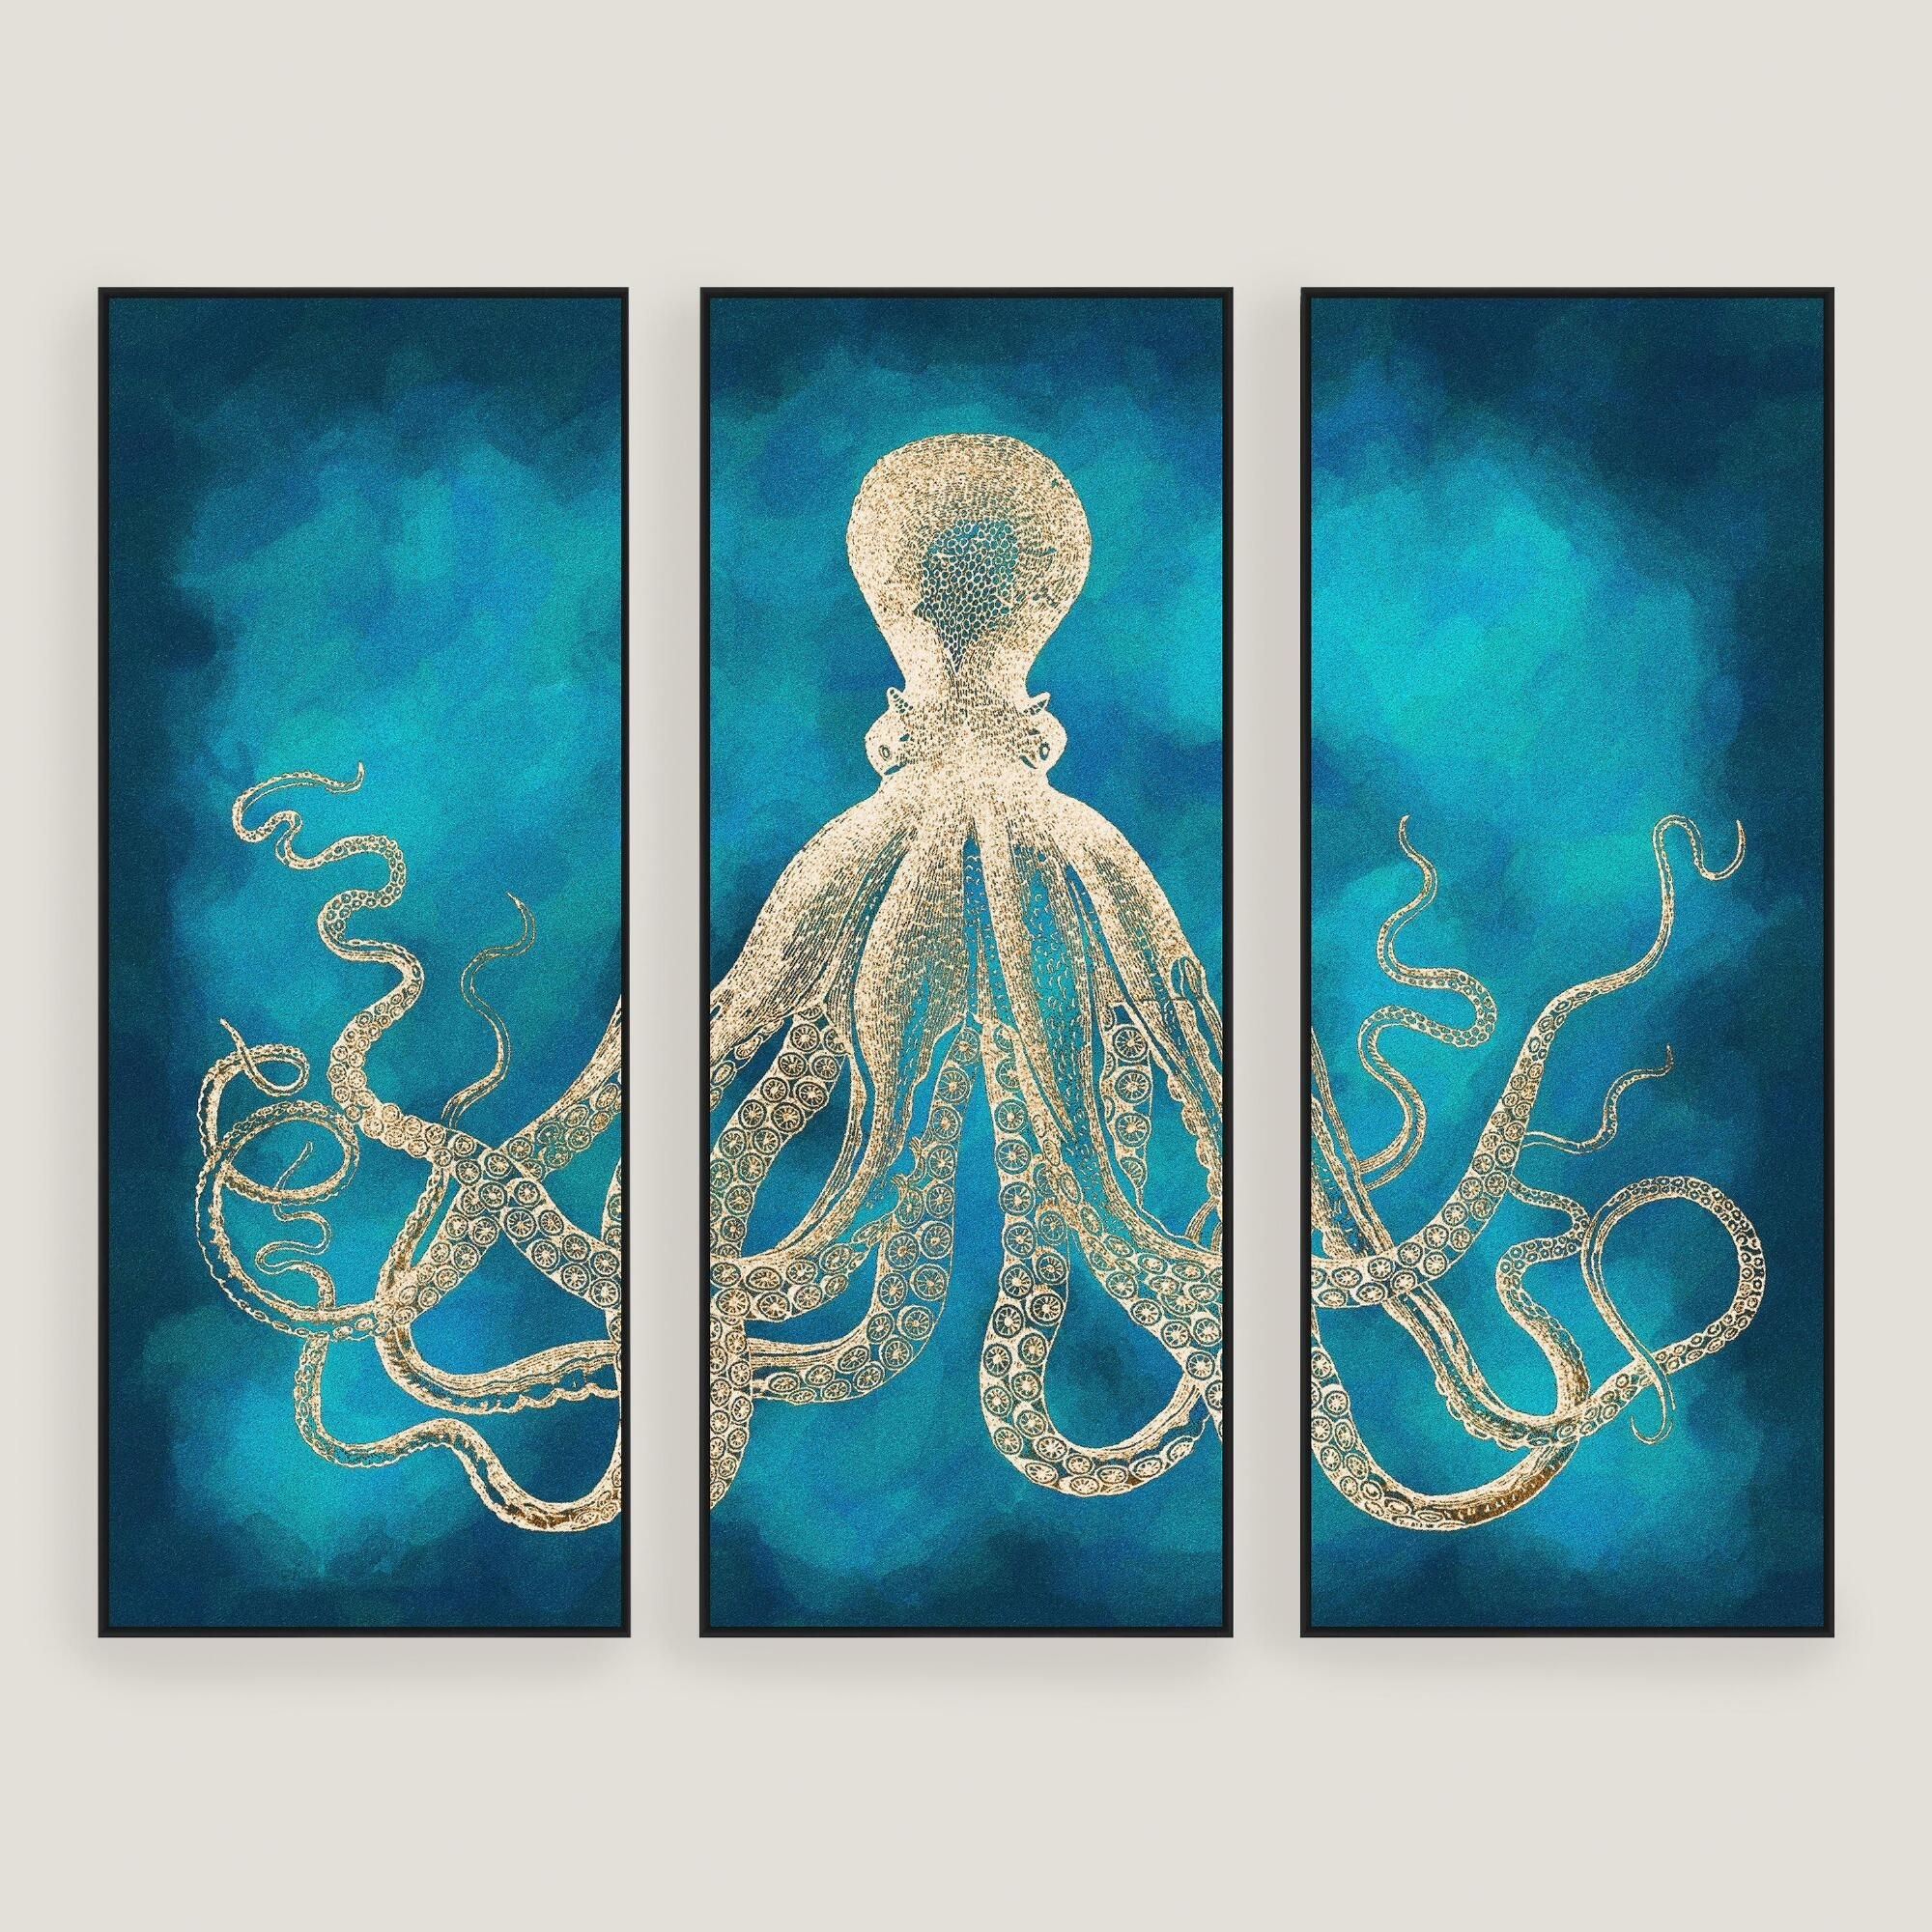 Octopus Sea Life Wall Art 3 Piece: Blueworld Market | Products Inside Most Current Octopus Wall Art (View 15 of 20)